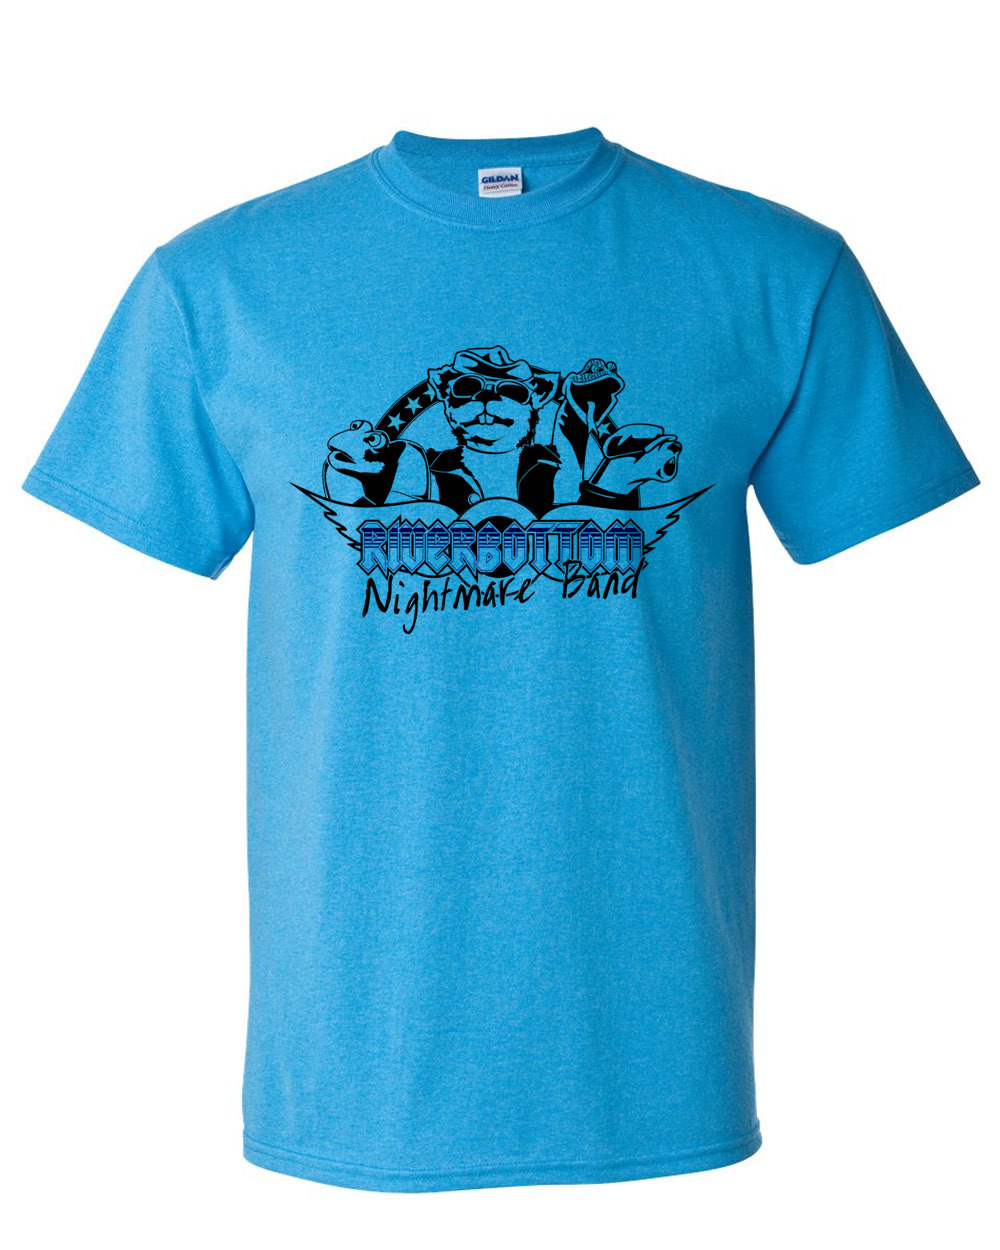 Mare band t shirt emmet otter s jug band christmas graphic tee for sale online tshirt store blue